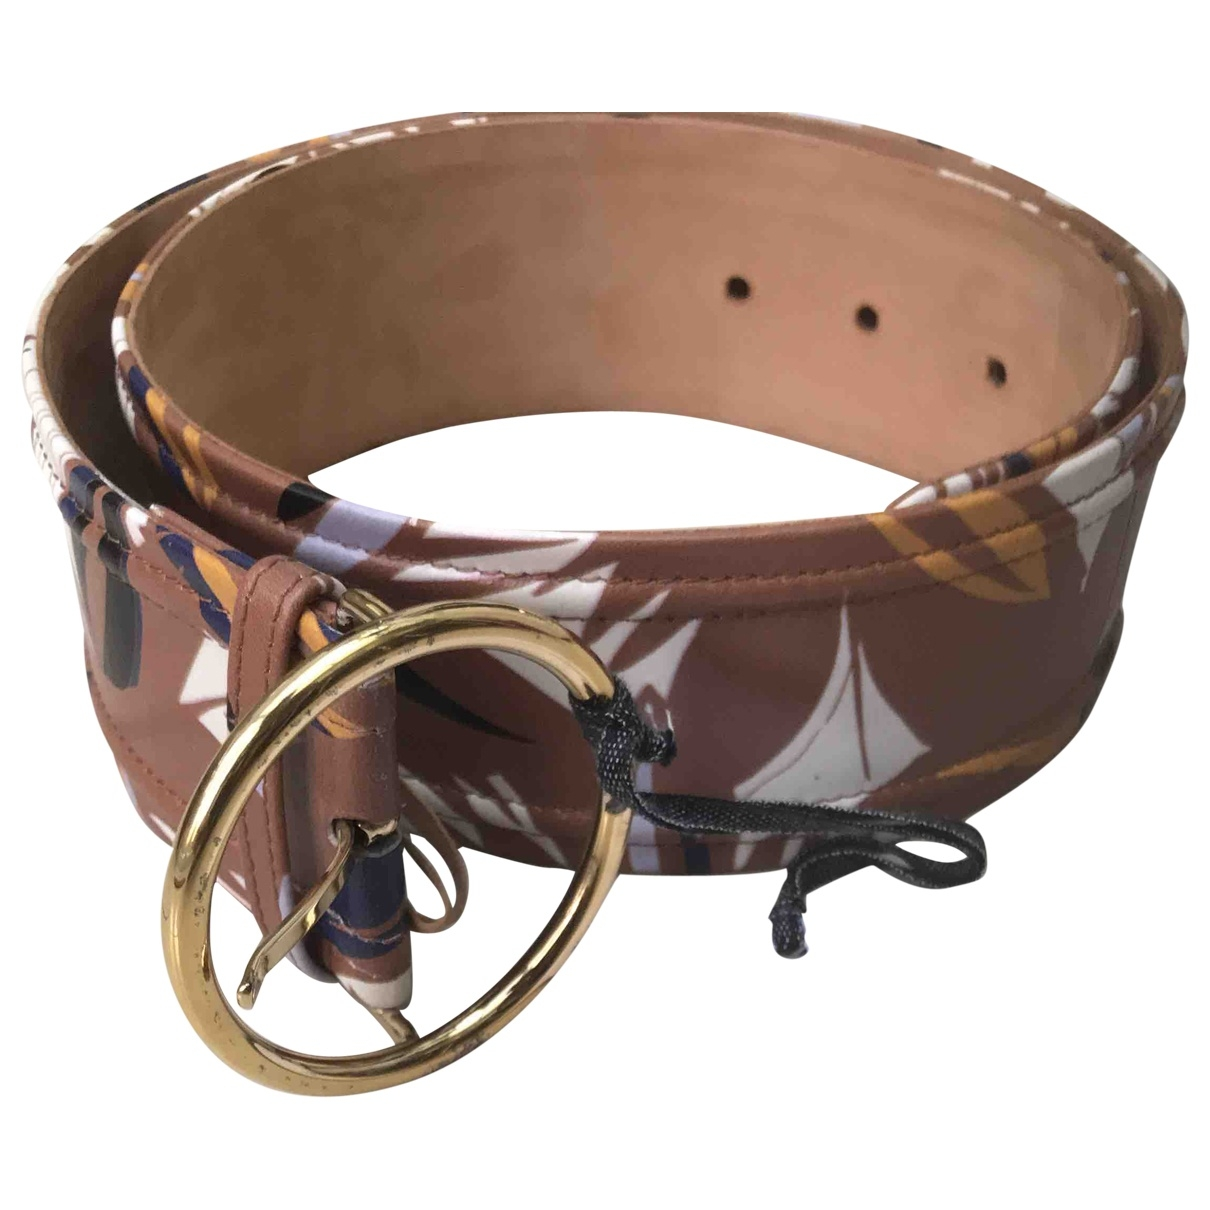 Agnona \N Brown Leather belt for Women 33 Inches